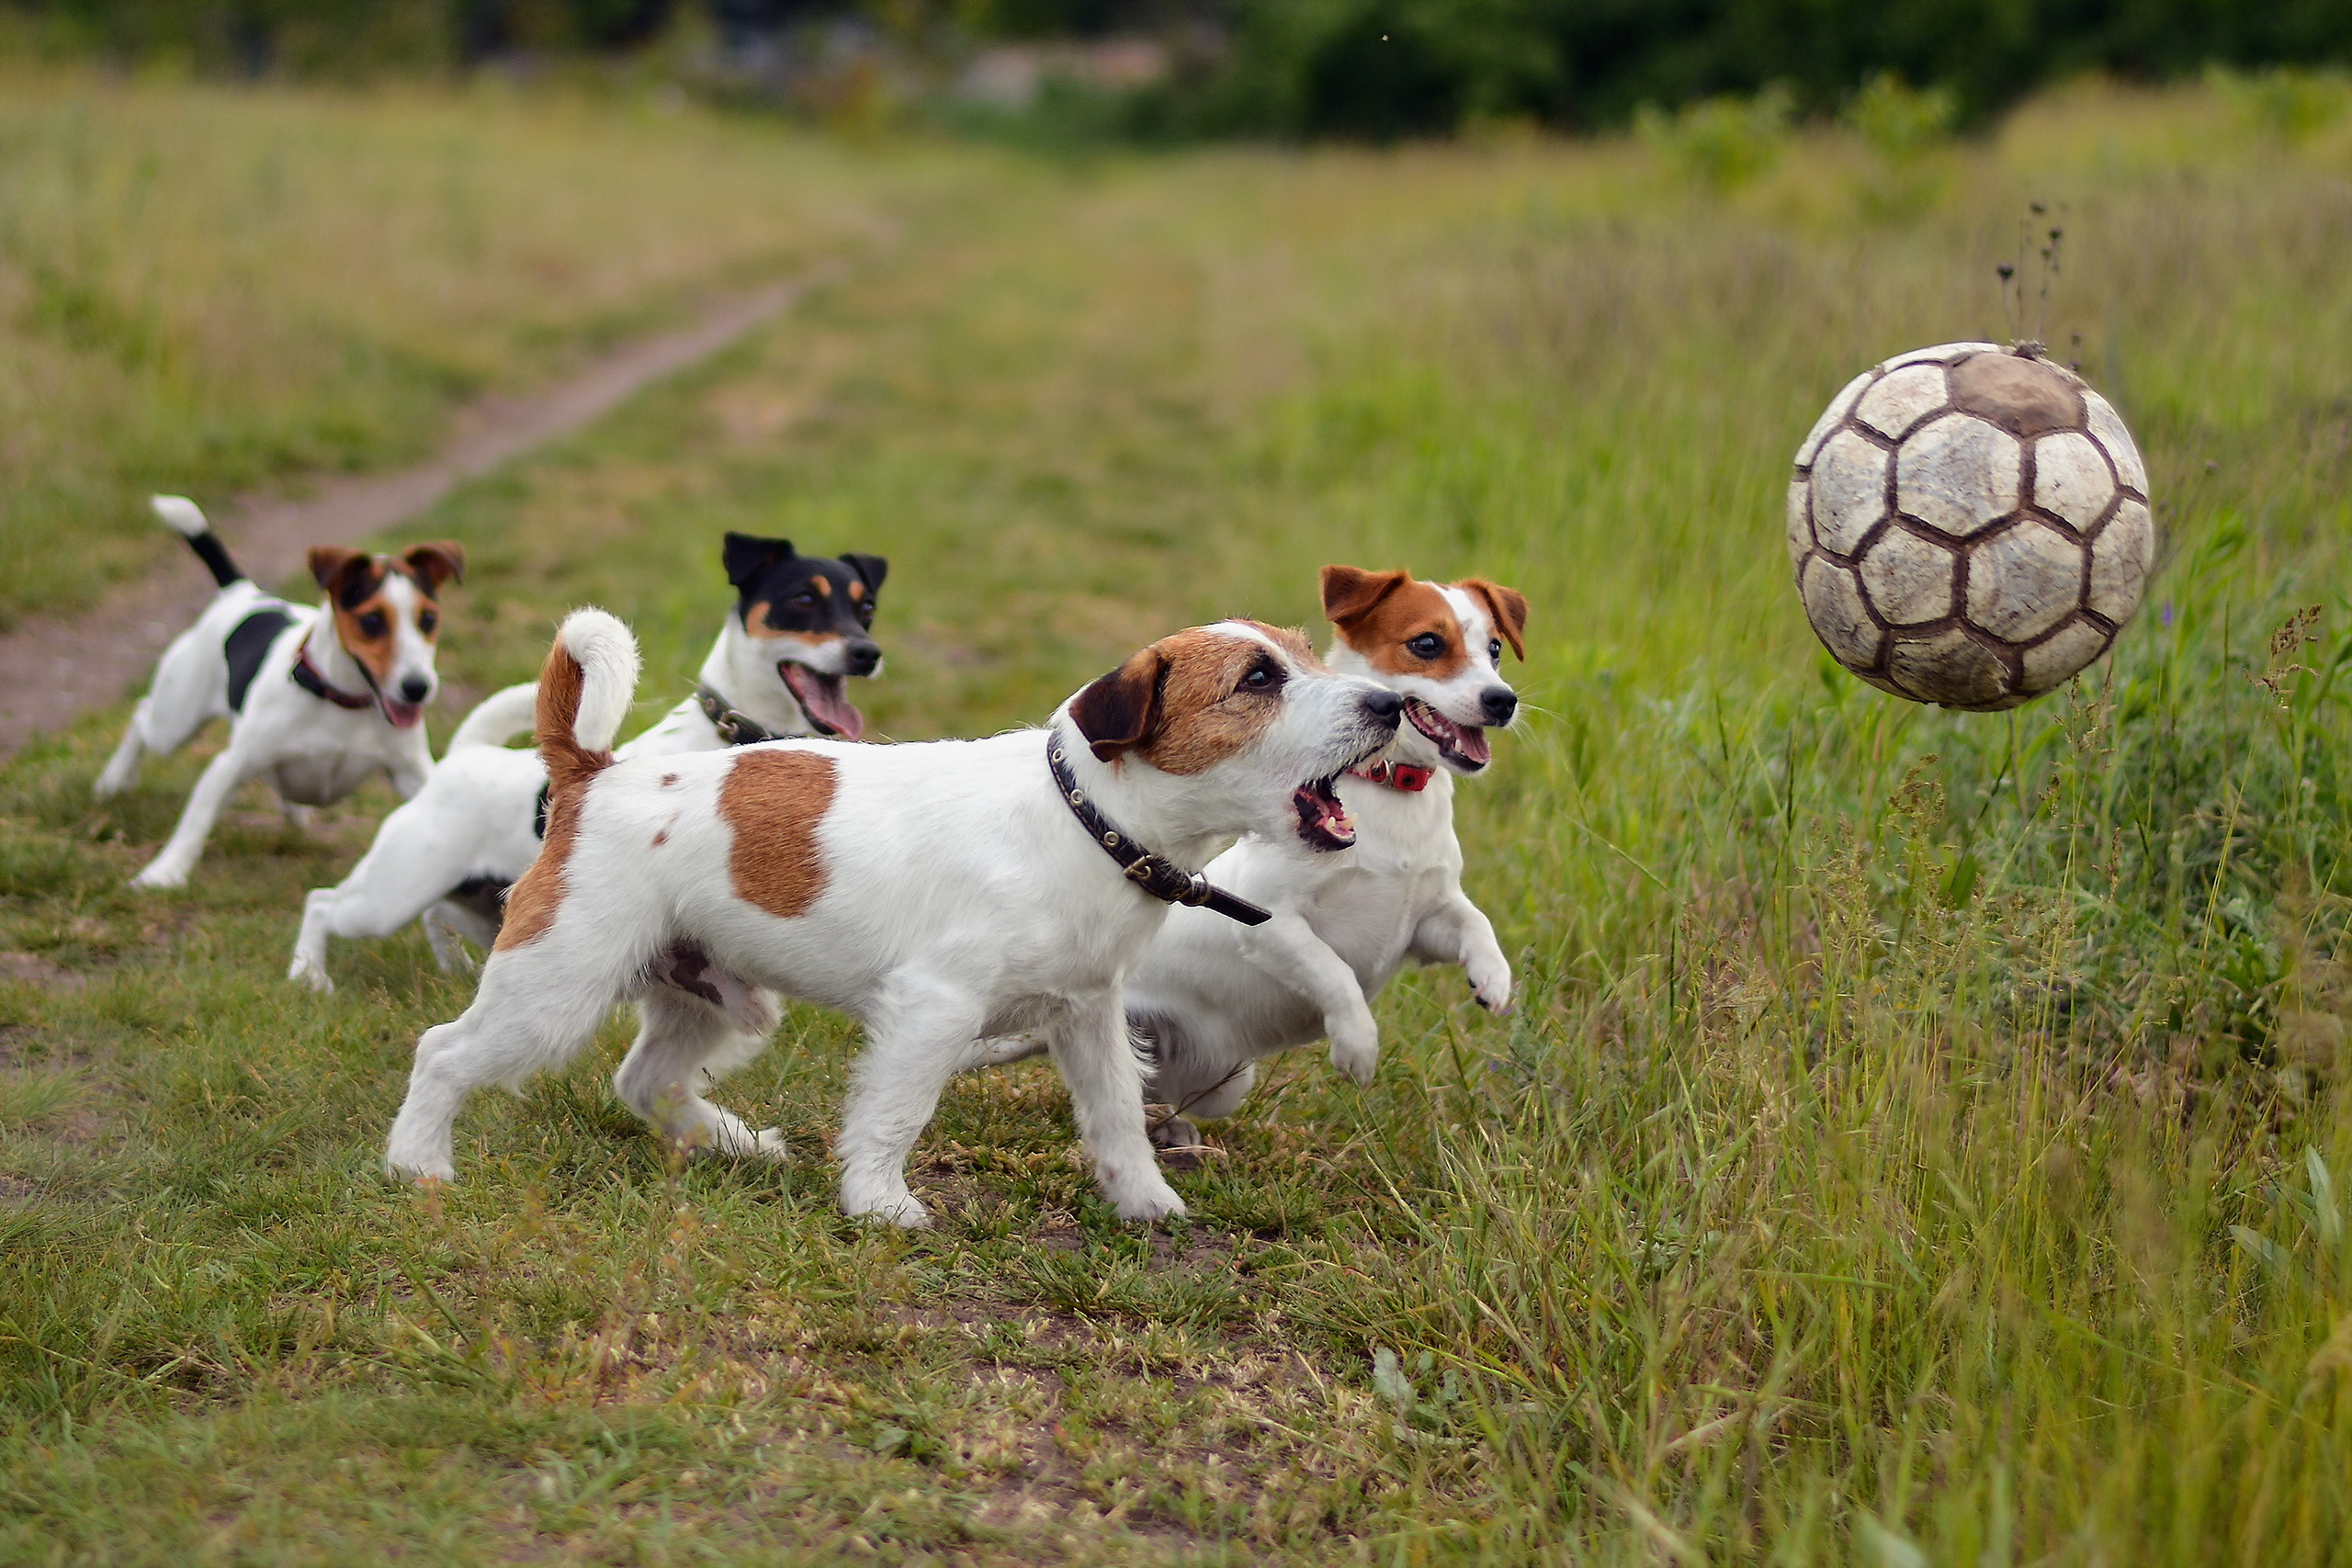 98074 download wallpaper Animals, Dogs, Grass, Ball, Playful, Puppies screensavers and pictures for free